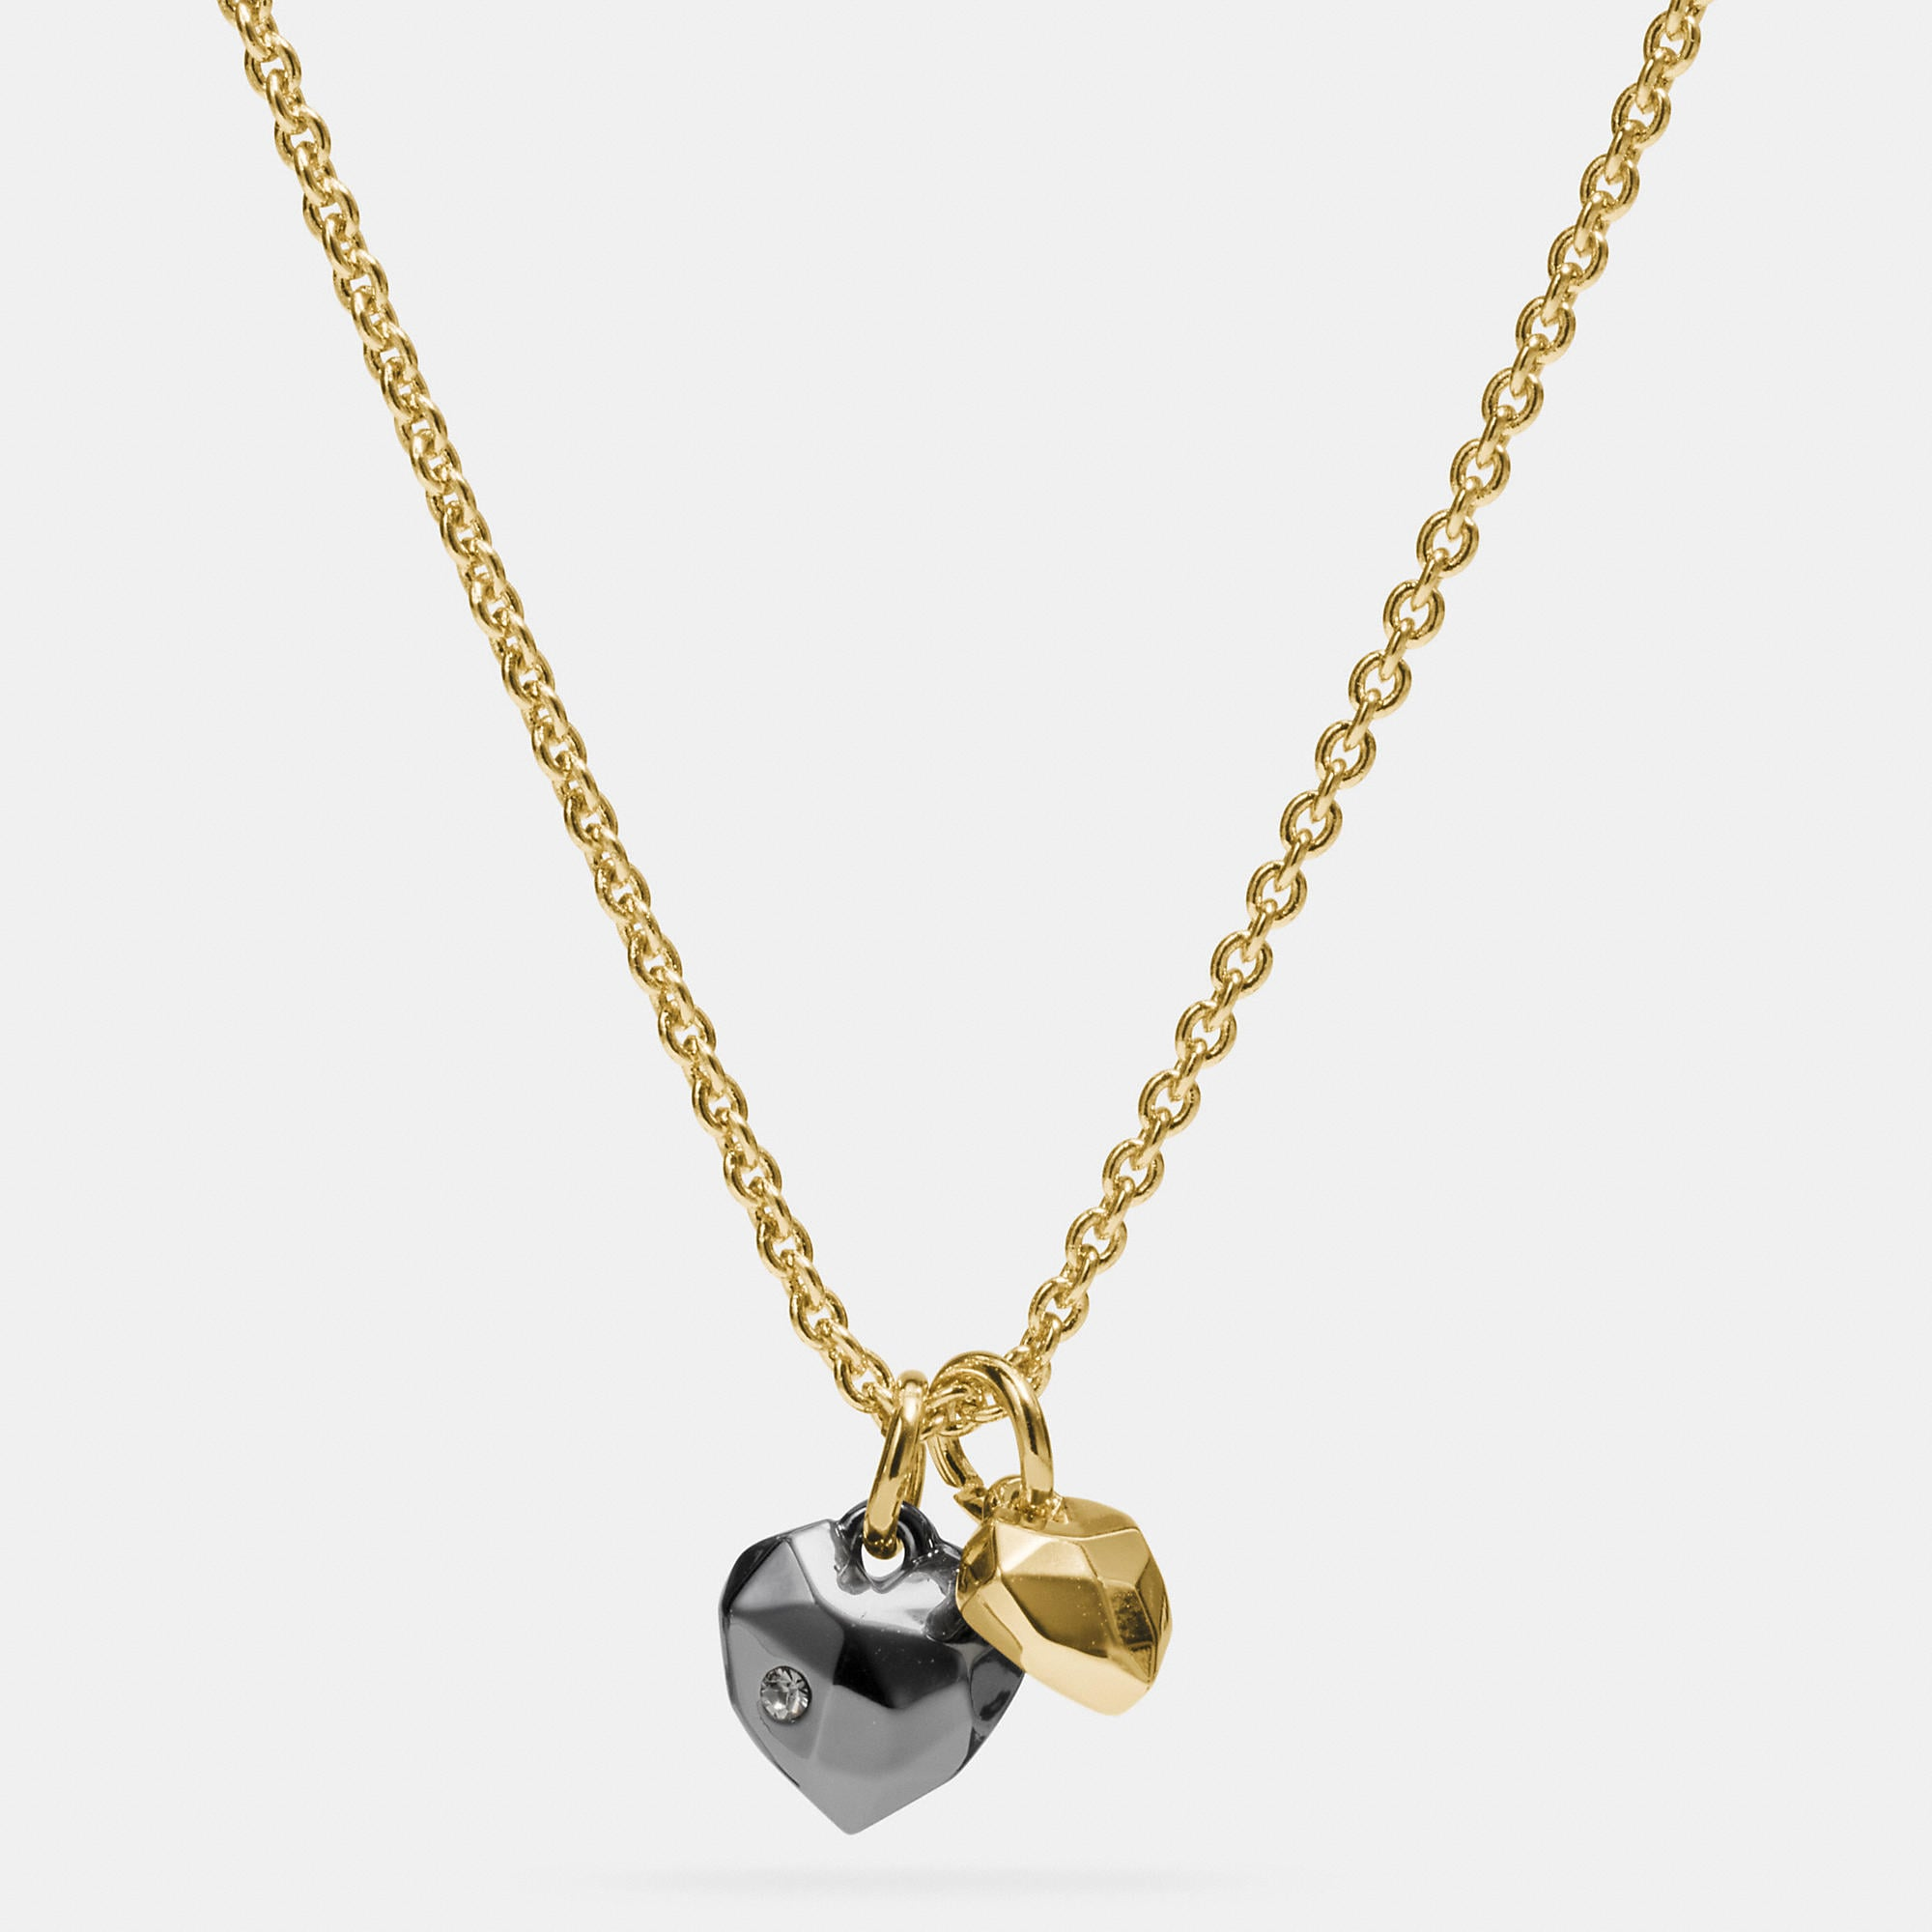 Coach Faceted Heart Charm Necklace